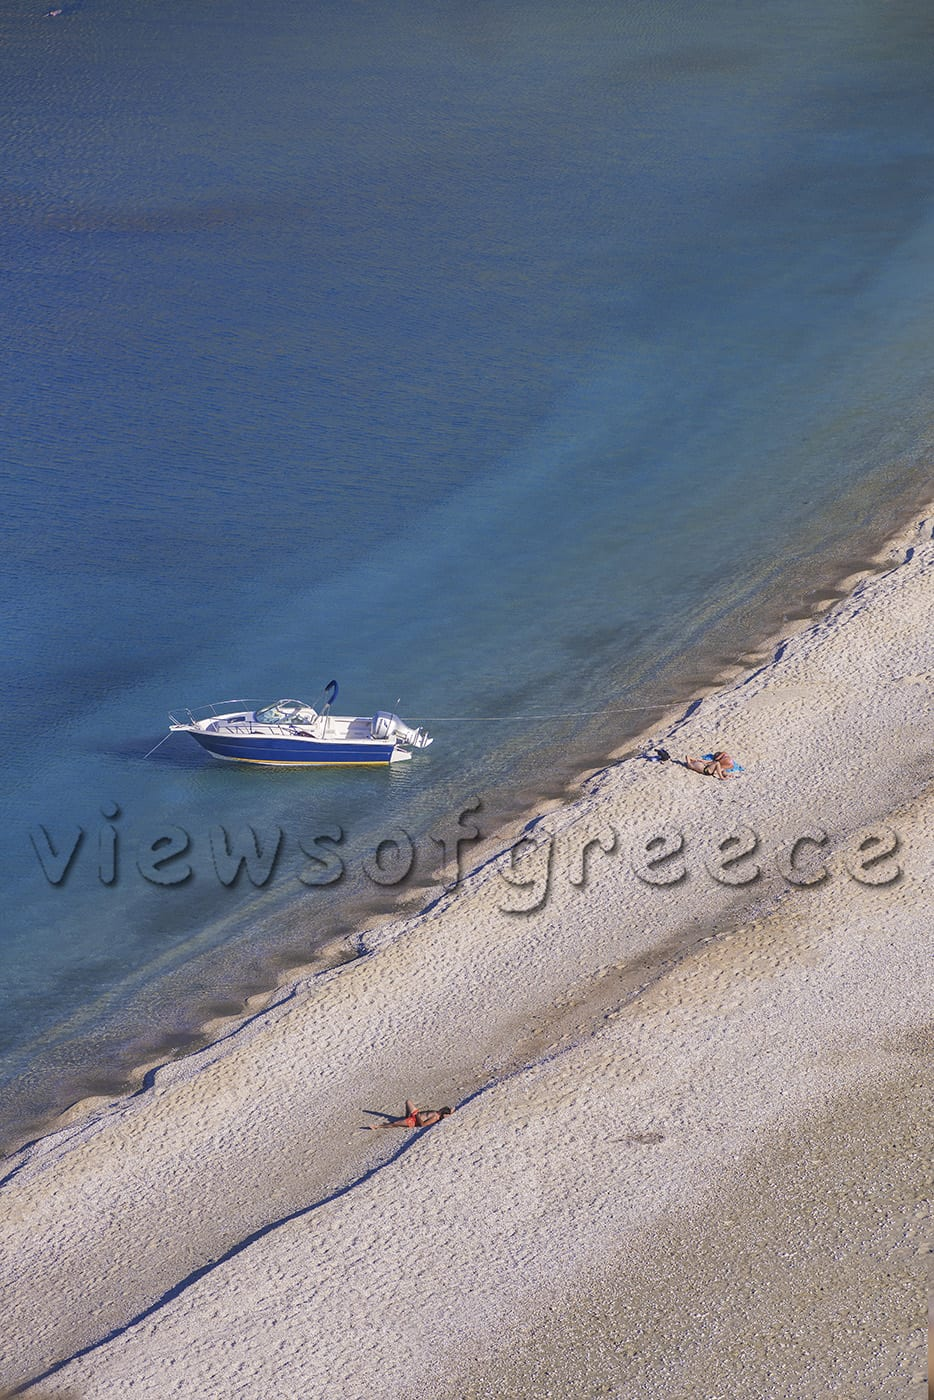 Aegean sea, Andros Greece, island, Cyclades, greek, travel, summer, tourism, sea, mediterranean, coast, aegean, traditional, culture, architecture, cycladic, vacation, sun, beach